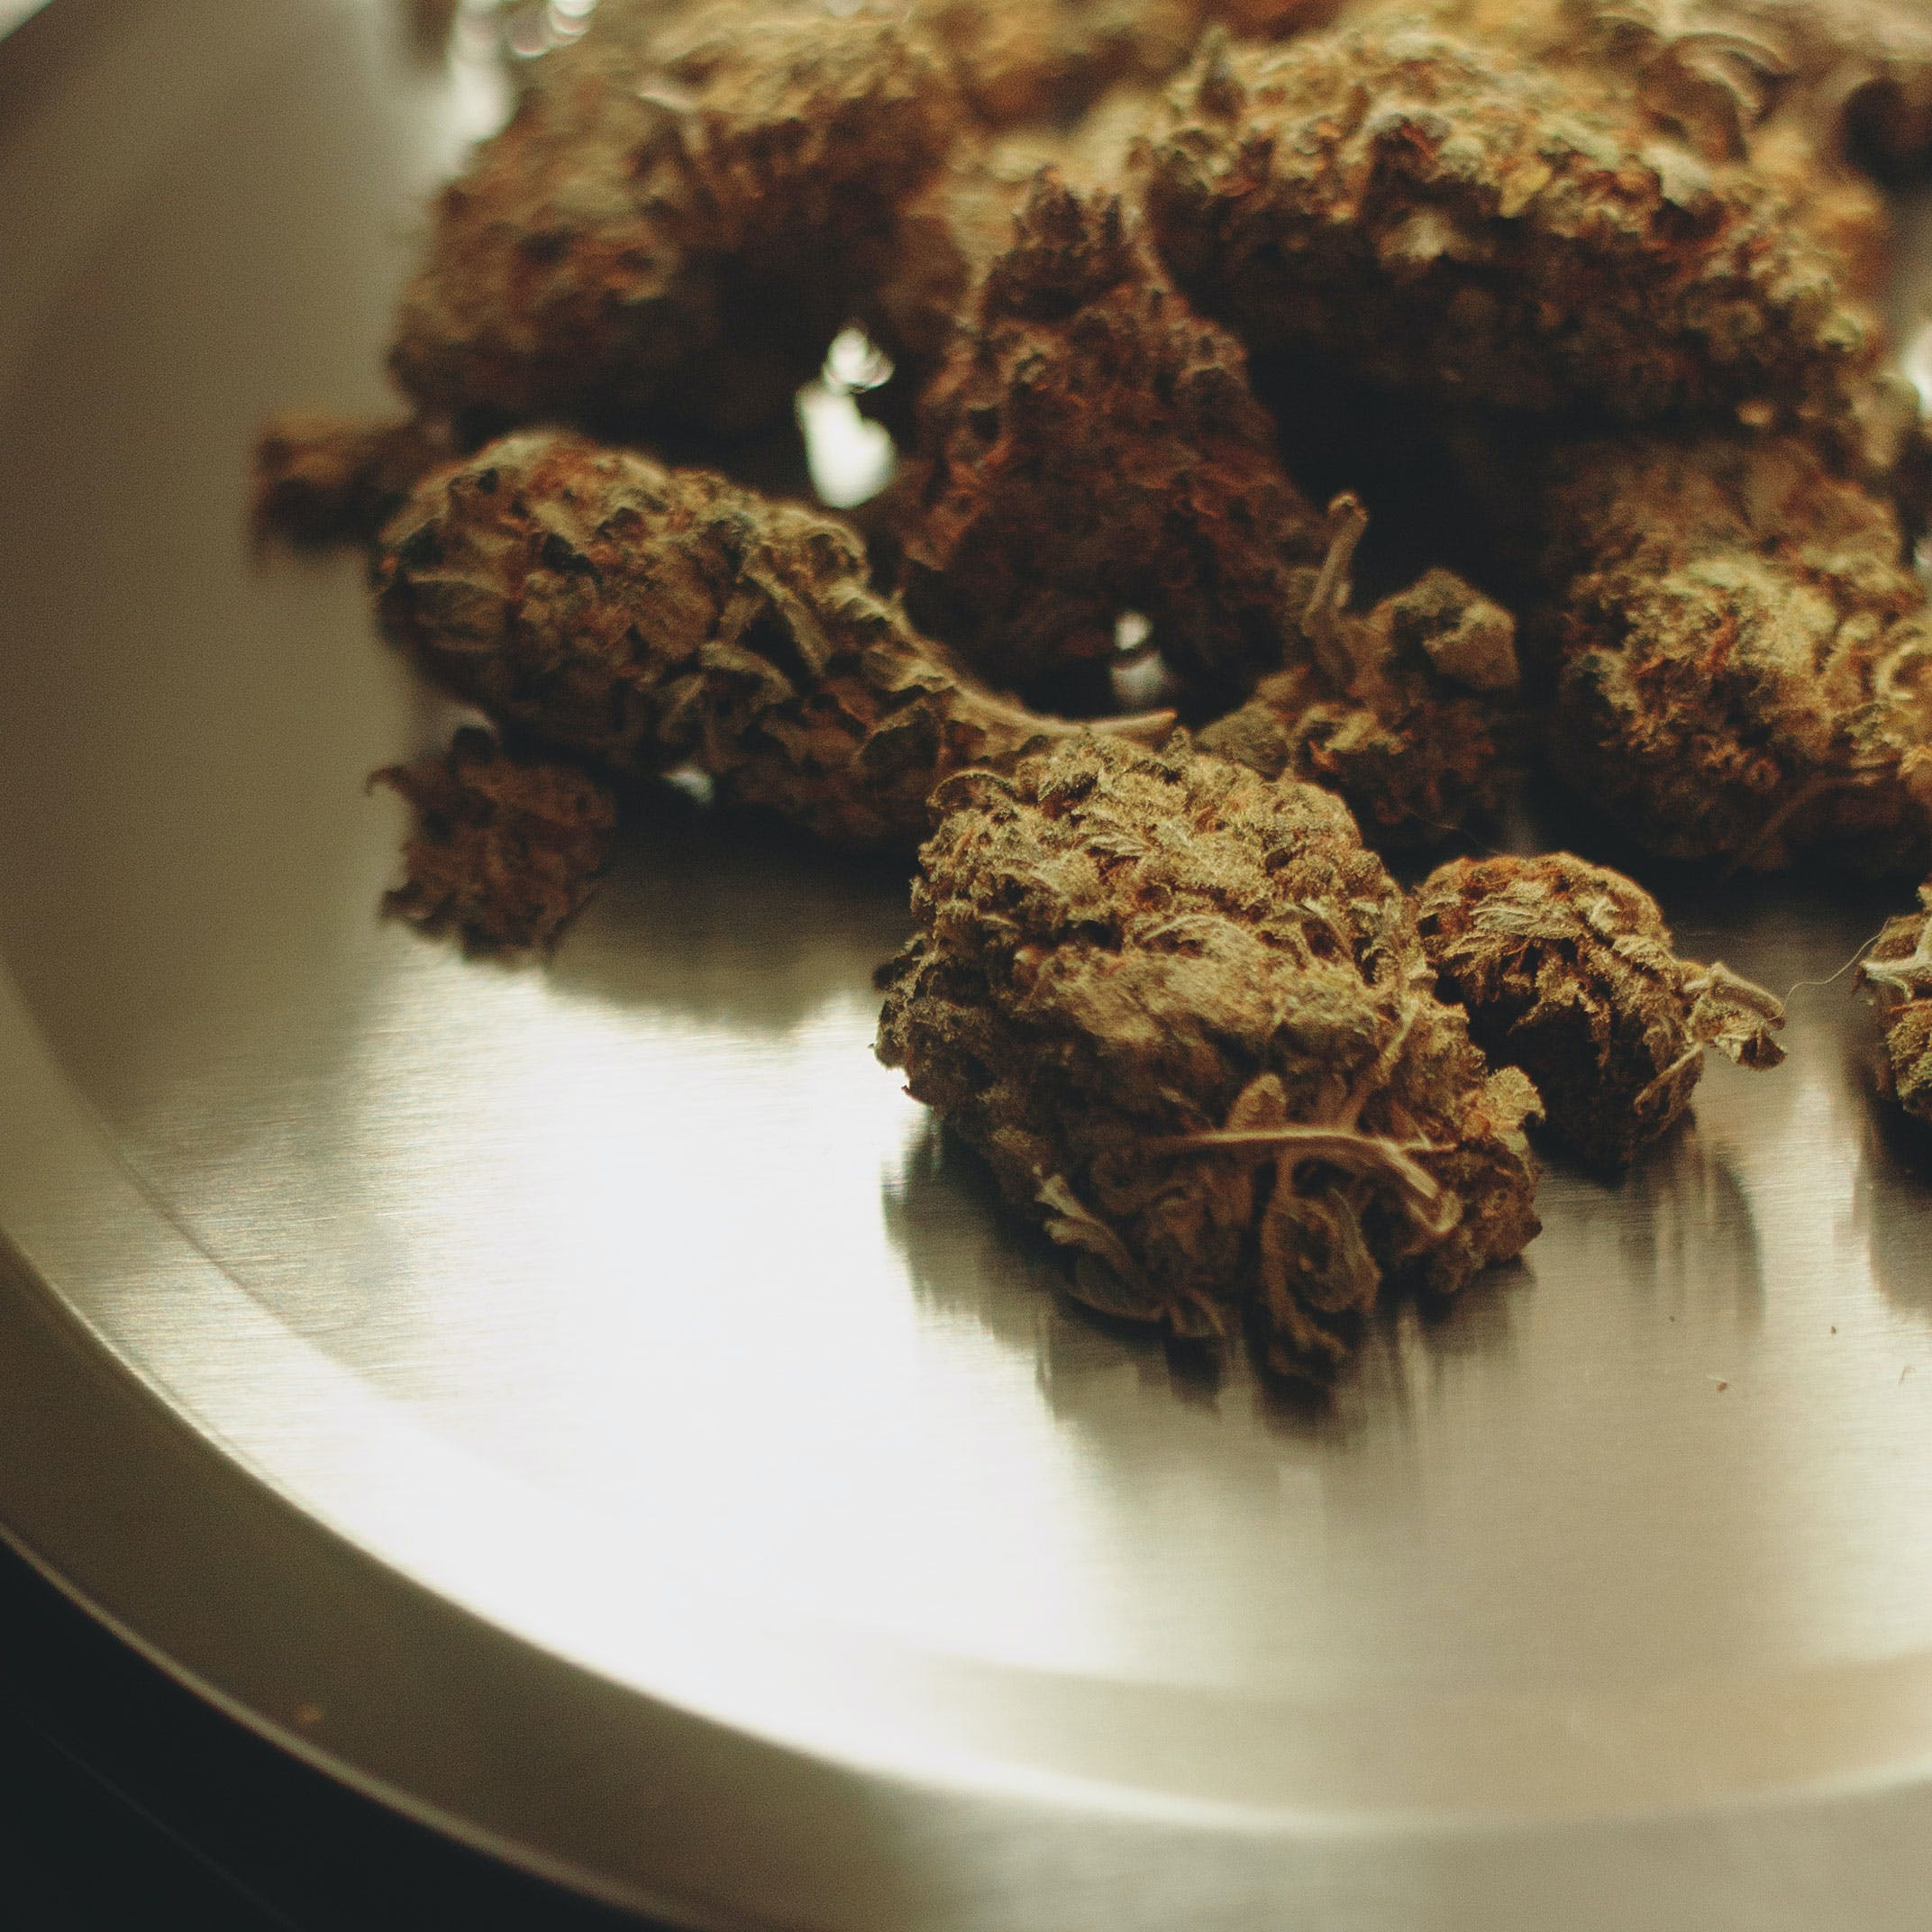 Weed Weightss Here is the Definitive Guide to Weed Weights